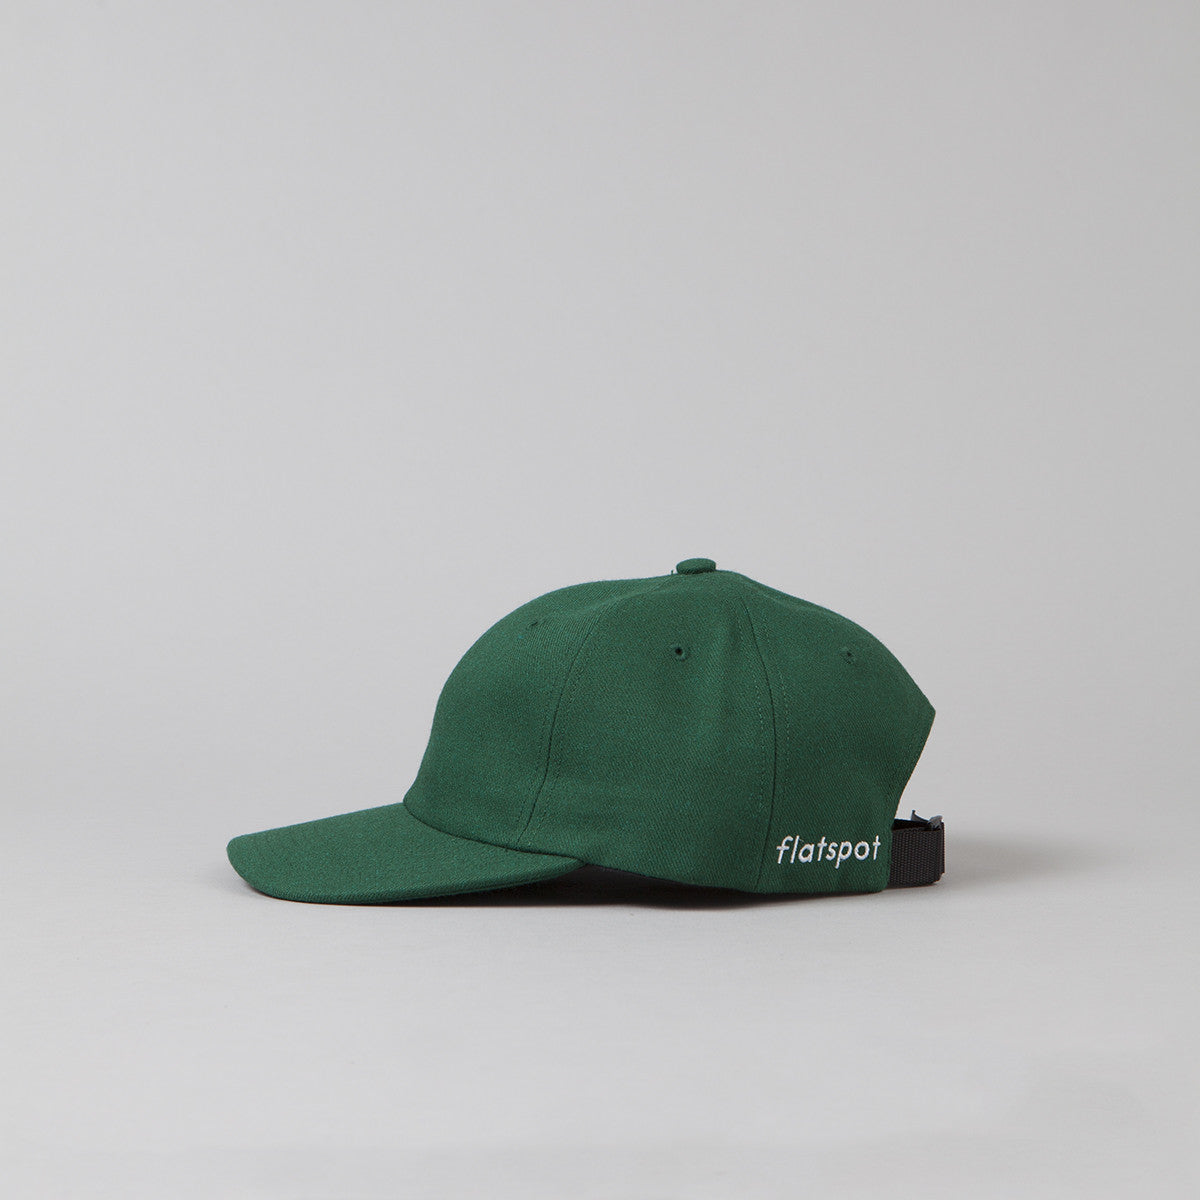 Flatspot Wool Polo Cap - Spruce Green